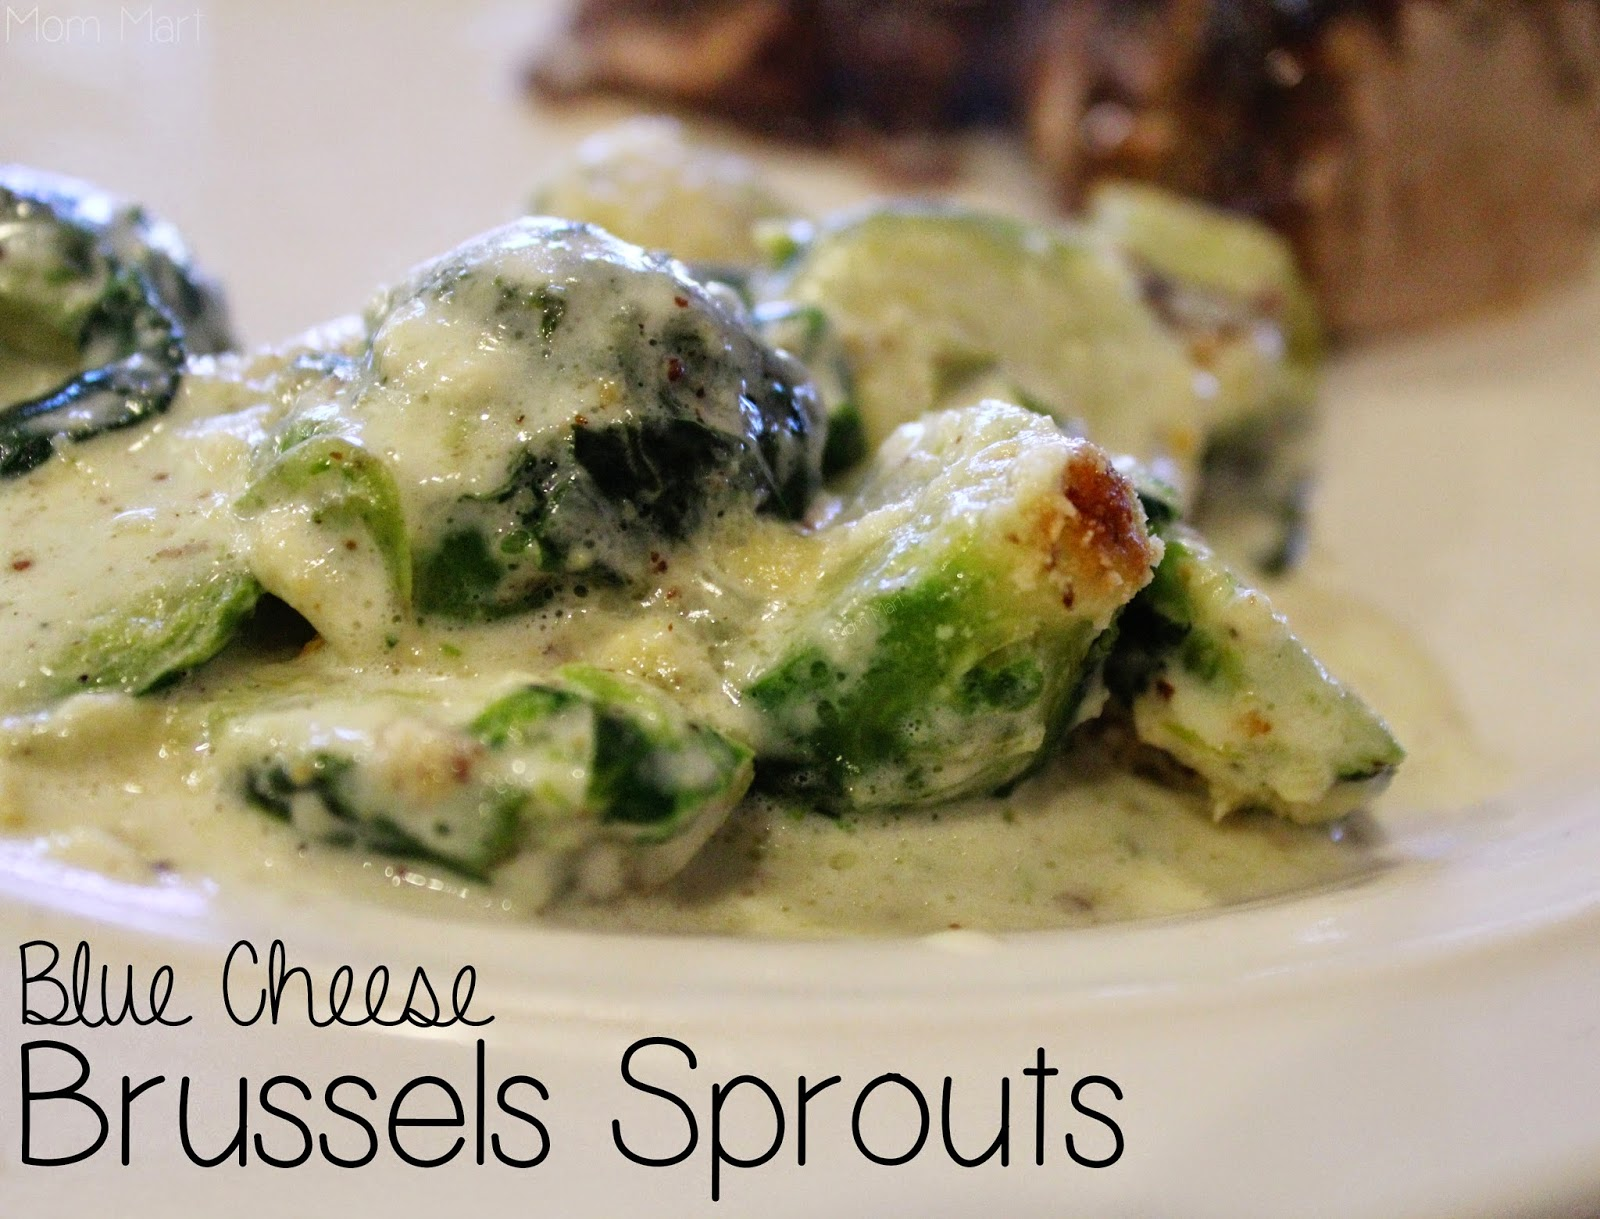 Blue Cheese Brussels Sprouts #Recipe #SideDish #Veggies #YUM #Foodie